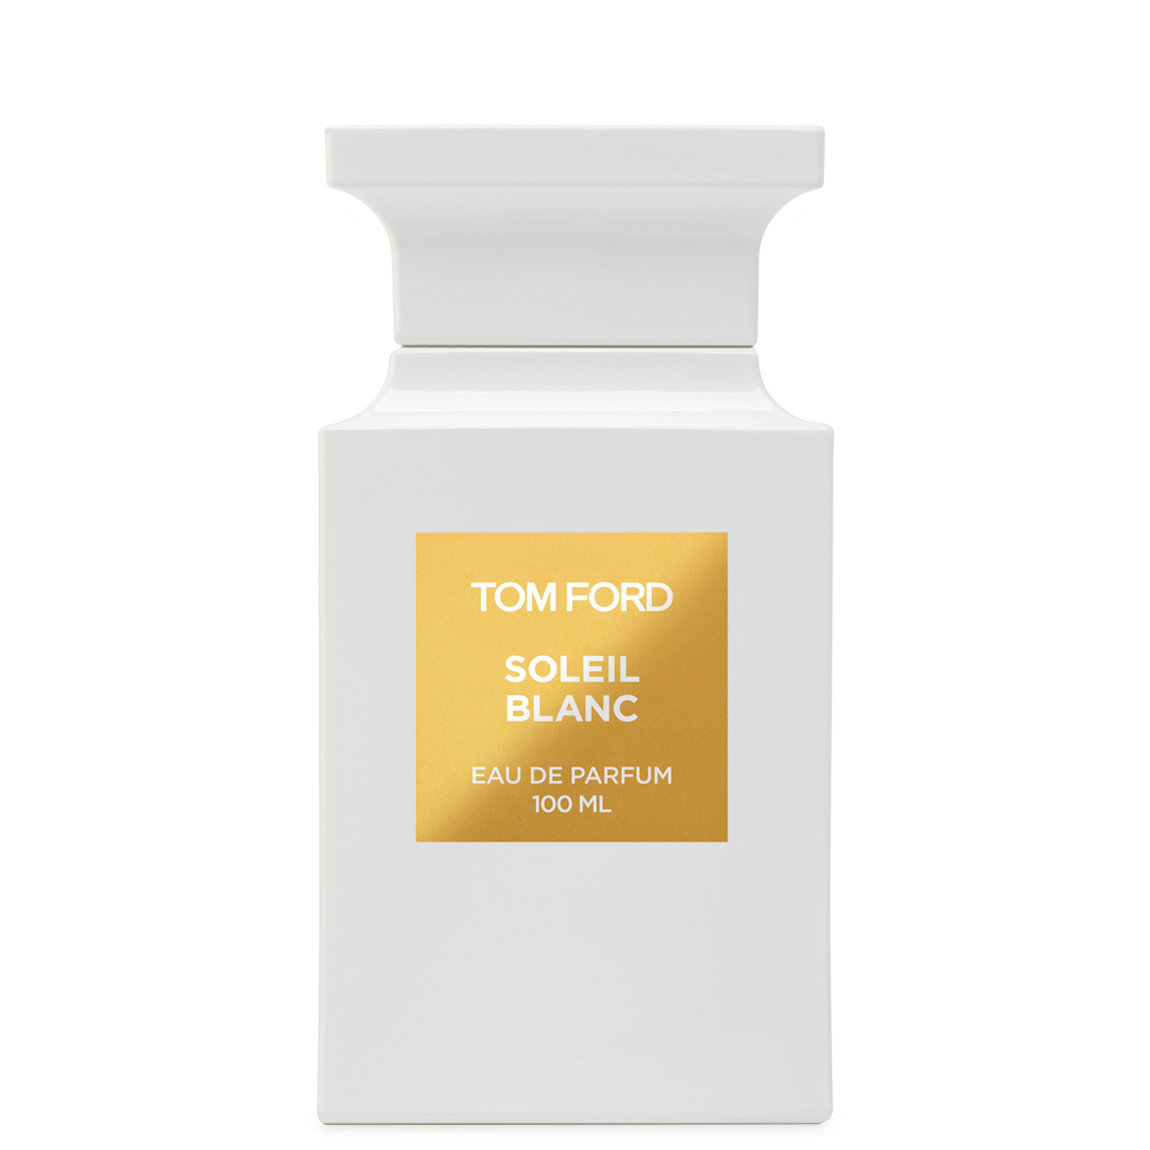 TOM FORD Soleil Blanc 100 ml alternative view 1 - product swatch.